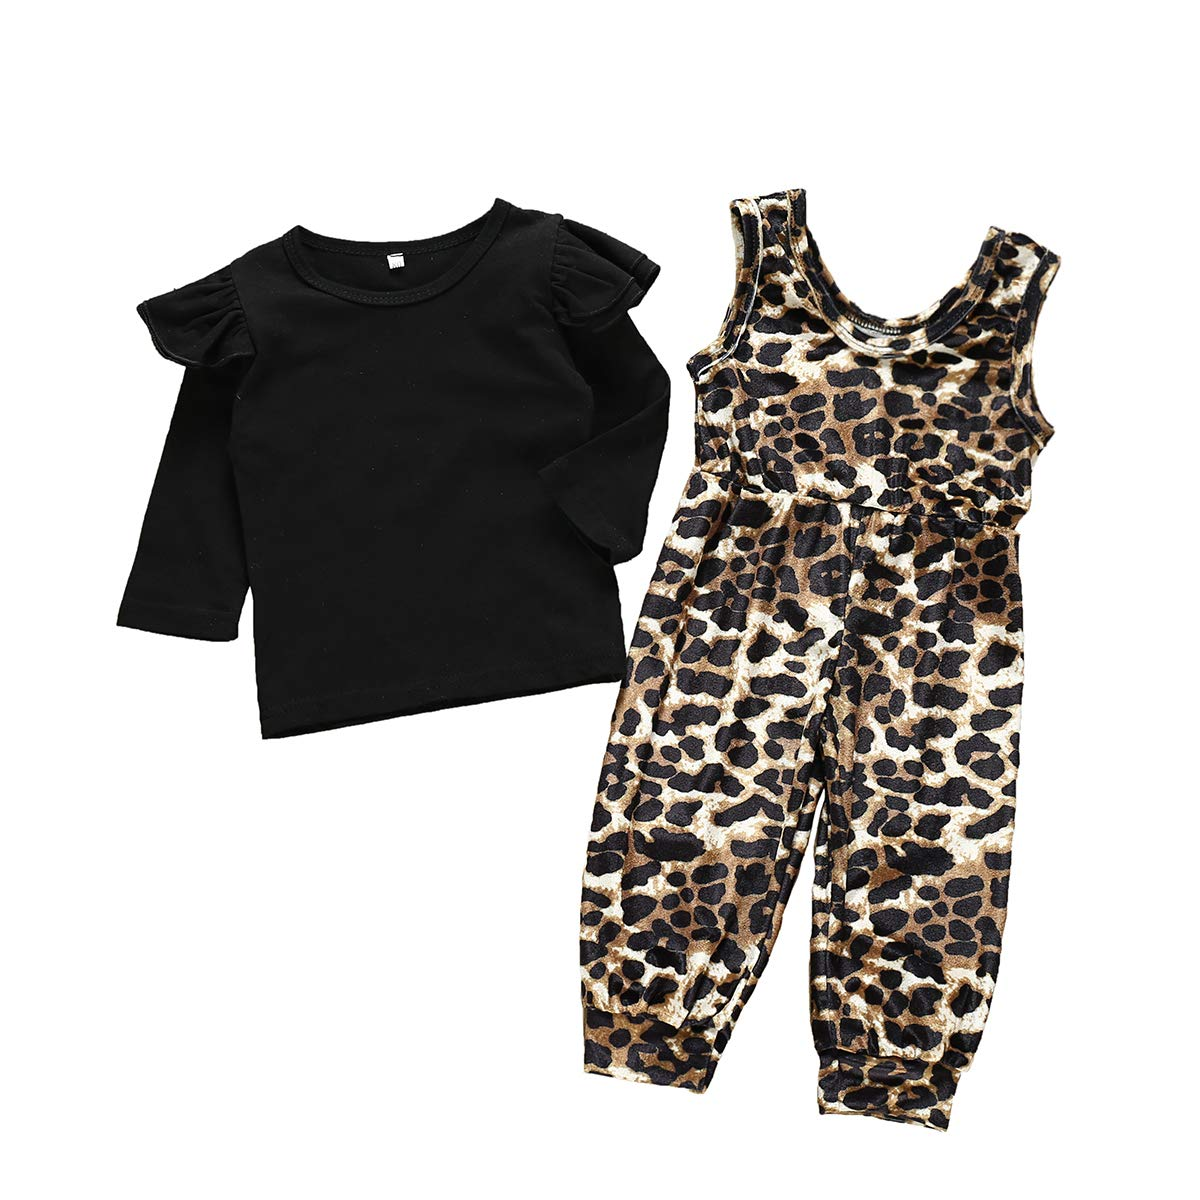 Oklady Infant Baby Girl Clothes Ruffle Sleeve Buttons Bandage T-Shirts + Flower Print Pants Sets